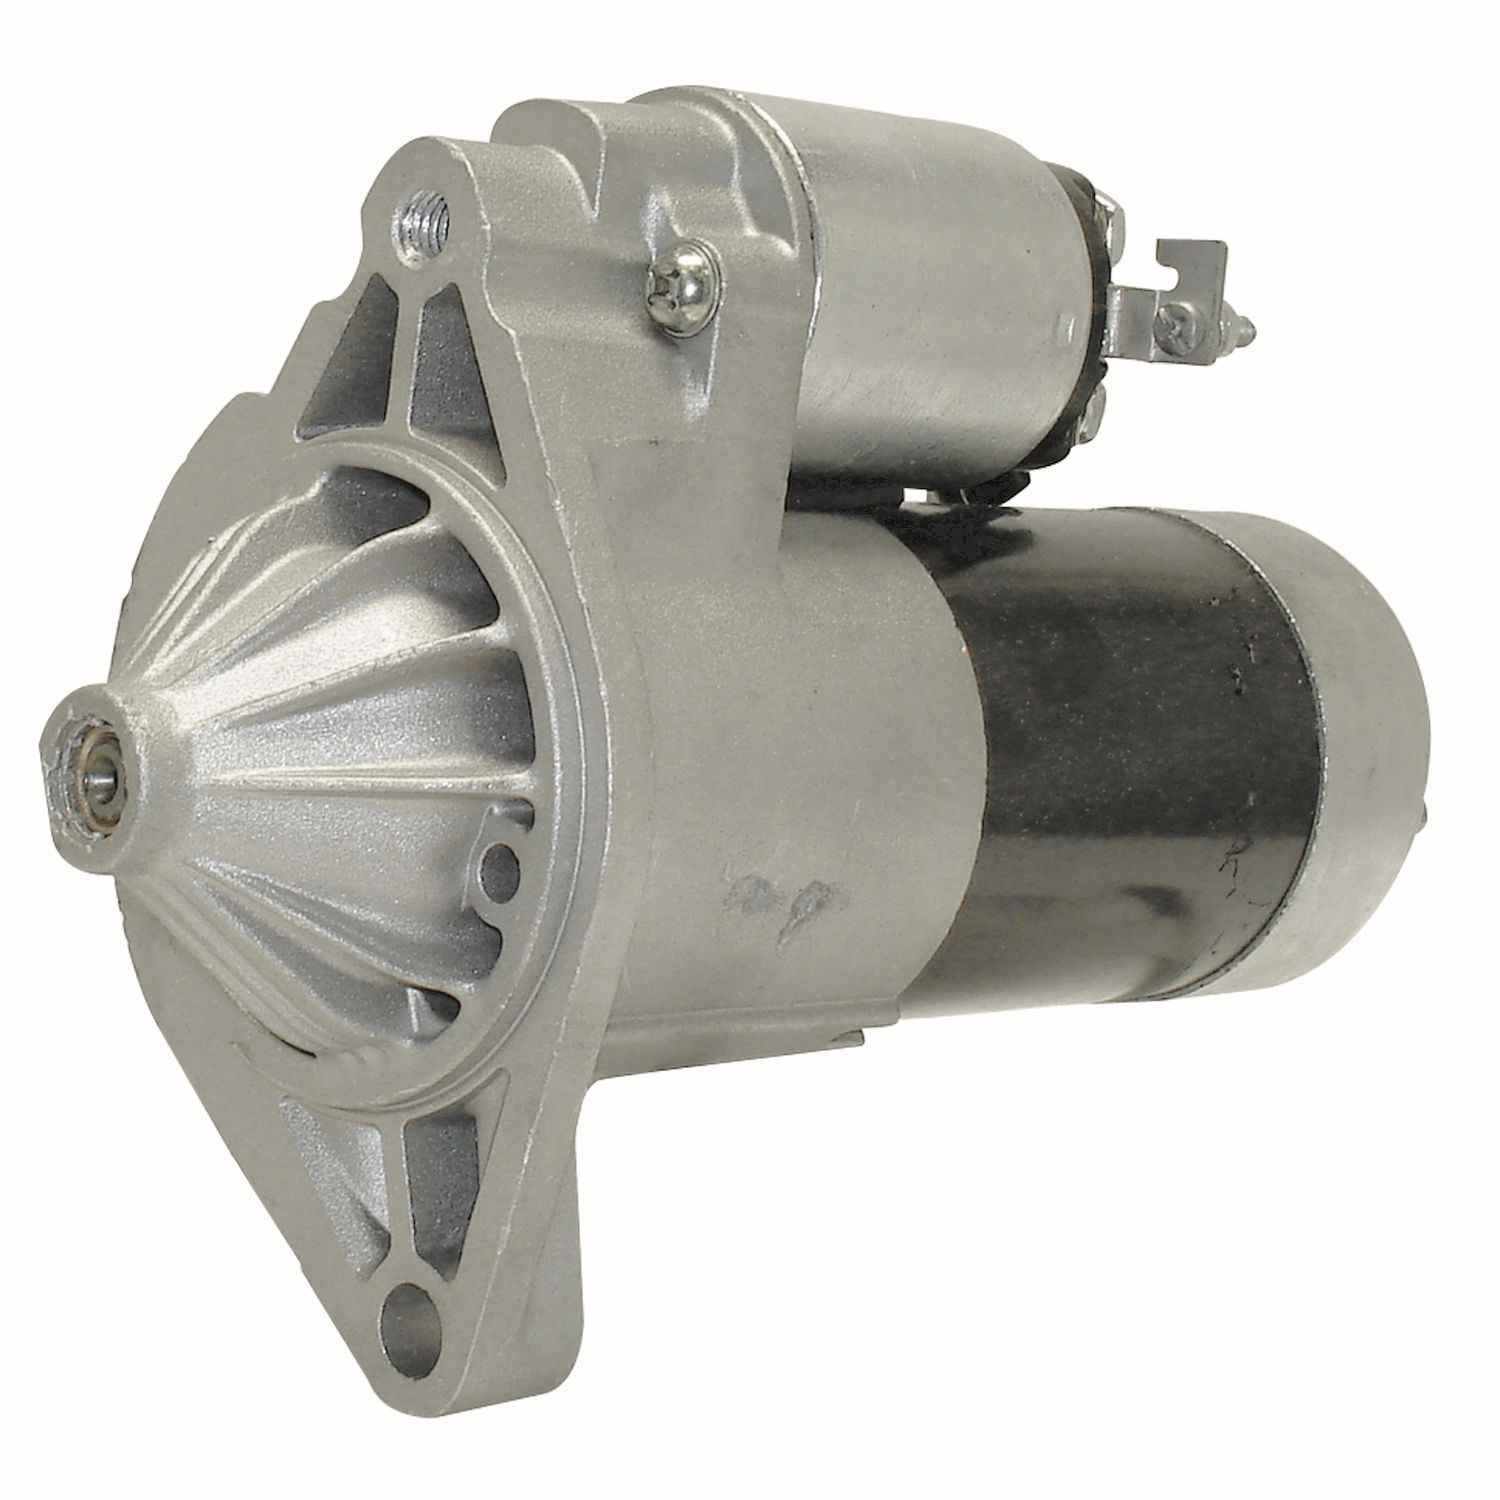 ACDELCO GOLD/PROFESSIONAL - Reman Starter Motor - DCC 336-1493A